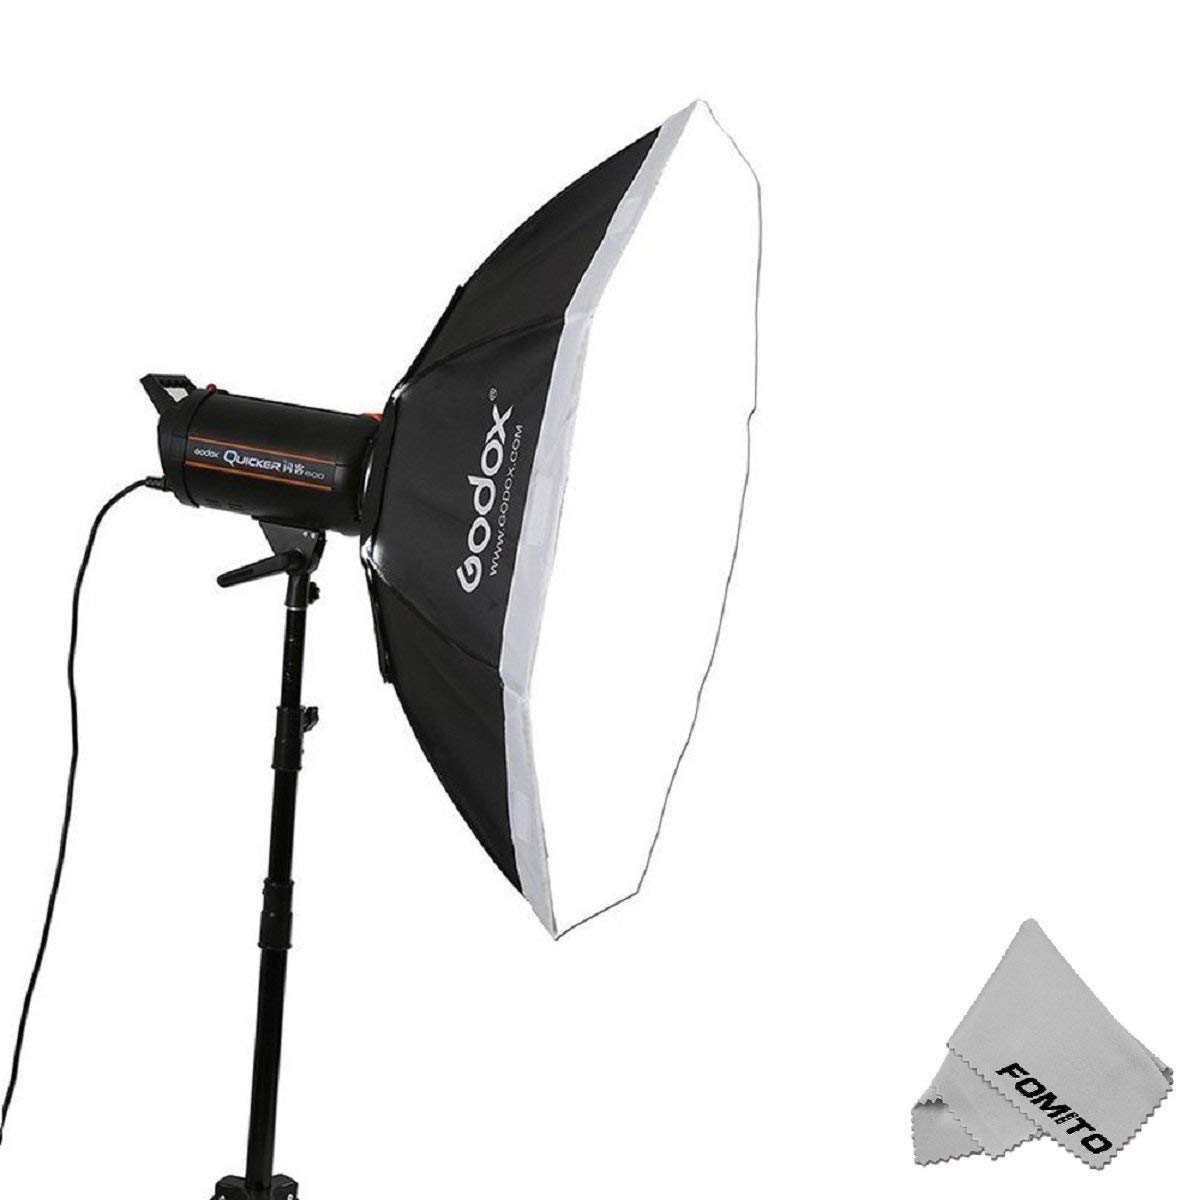 Fomito Godox Top Octagon Softbox 95cm/37inch Octagon Softbox Photography Light Diffuser and Modifier with Bowens Speedring Mount for Monolight Photo Studio Strobe Lighting